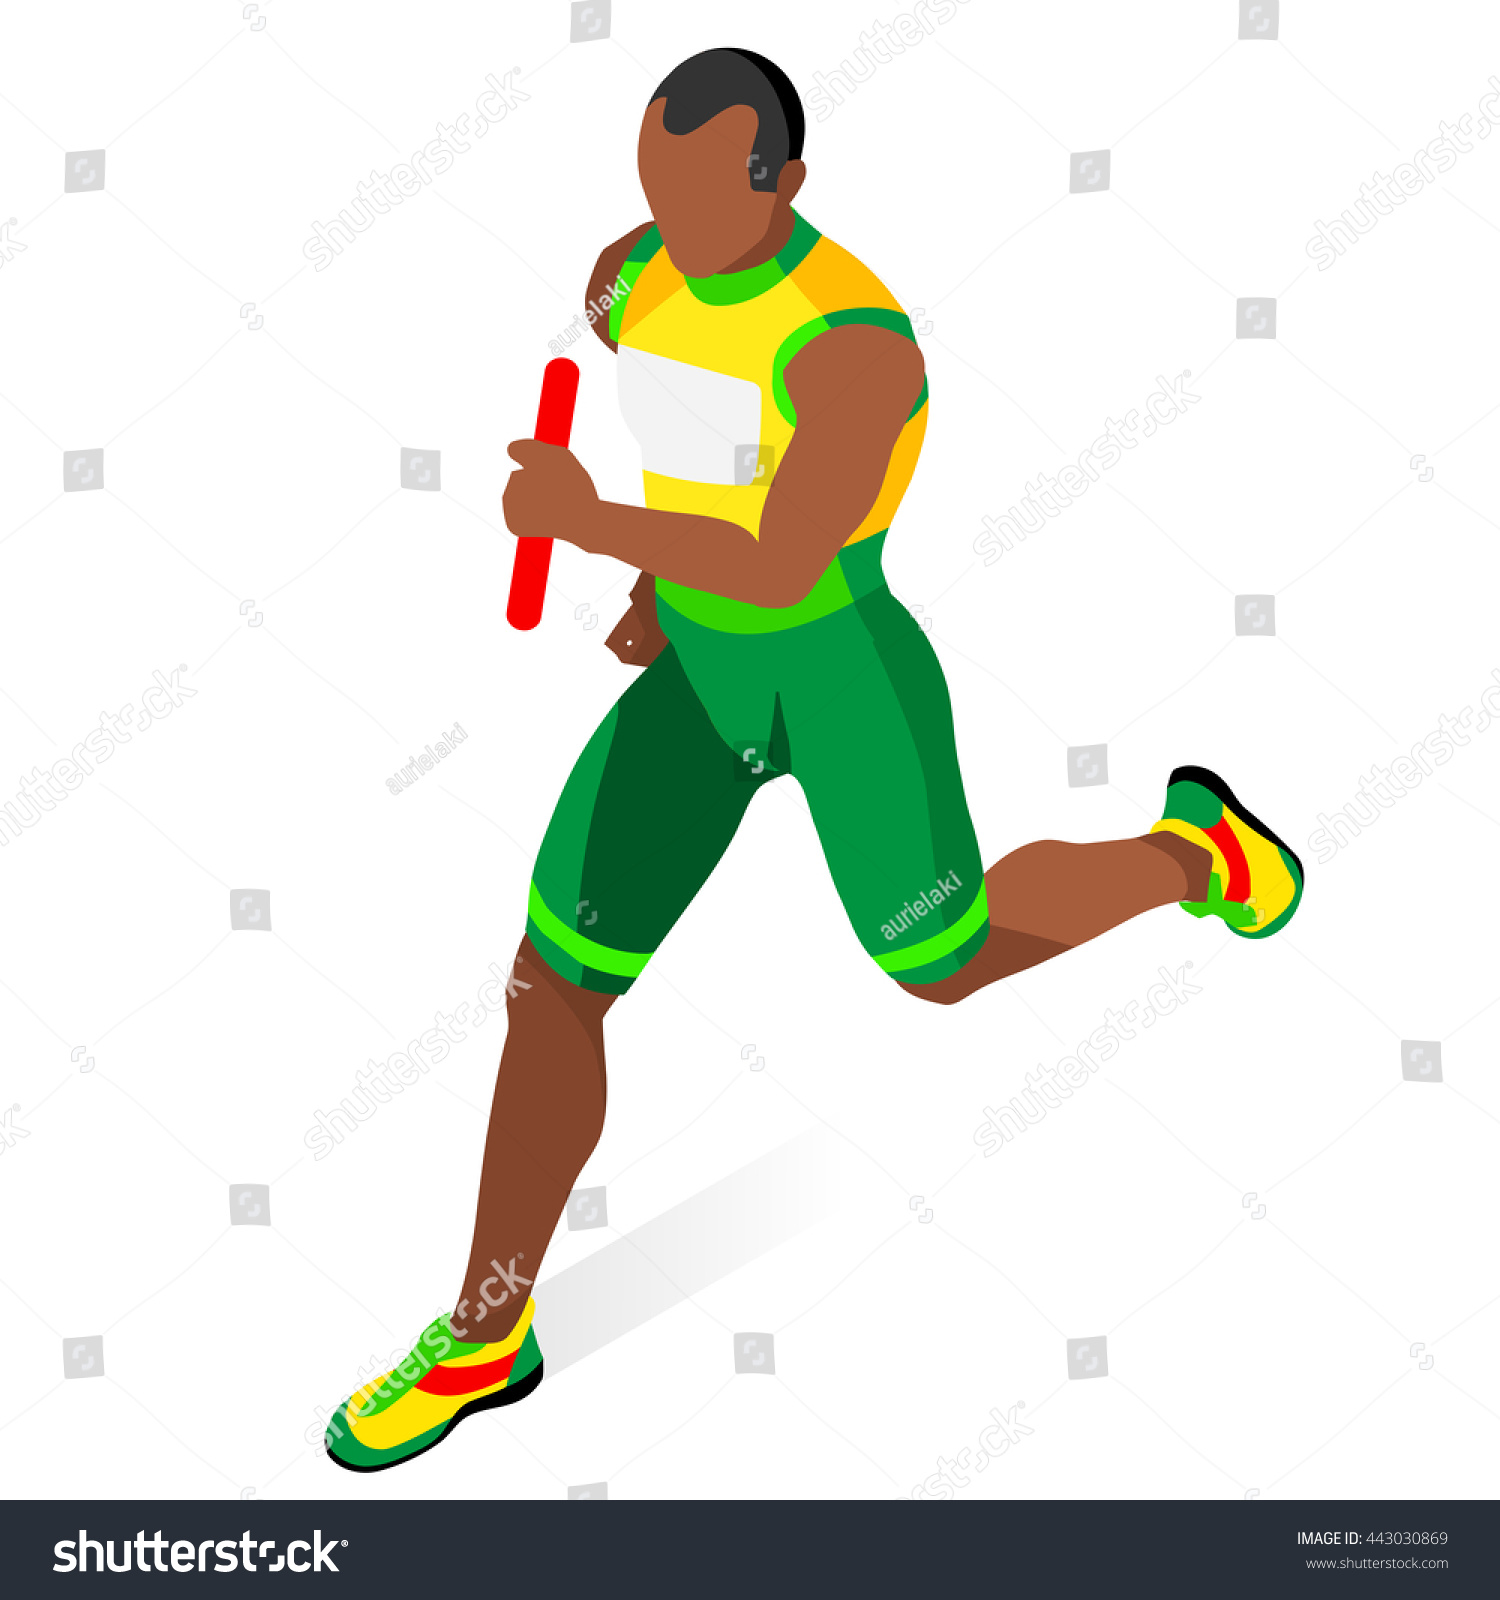 Track & Field Relay Race - Runner Grunge Graphic Clipart Image